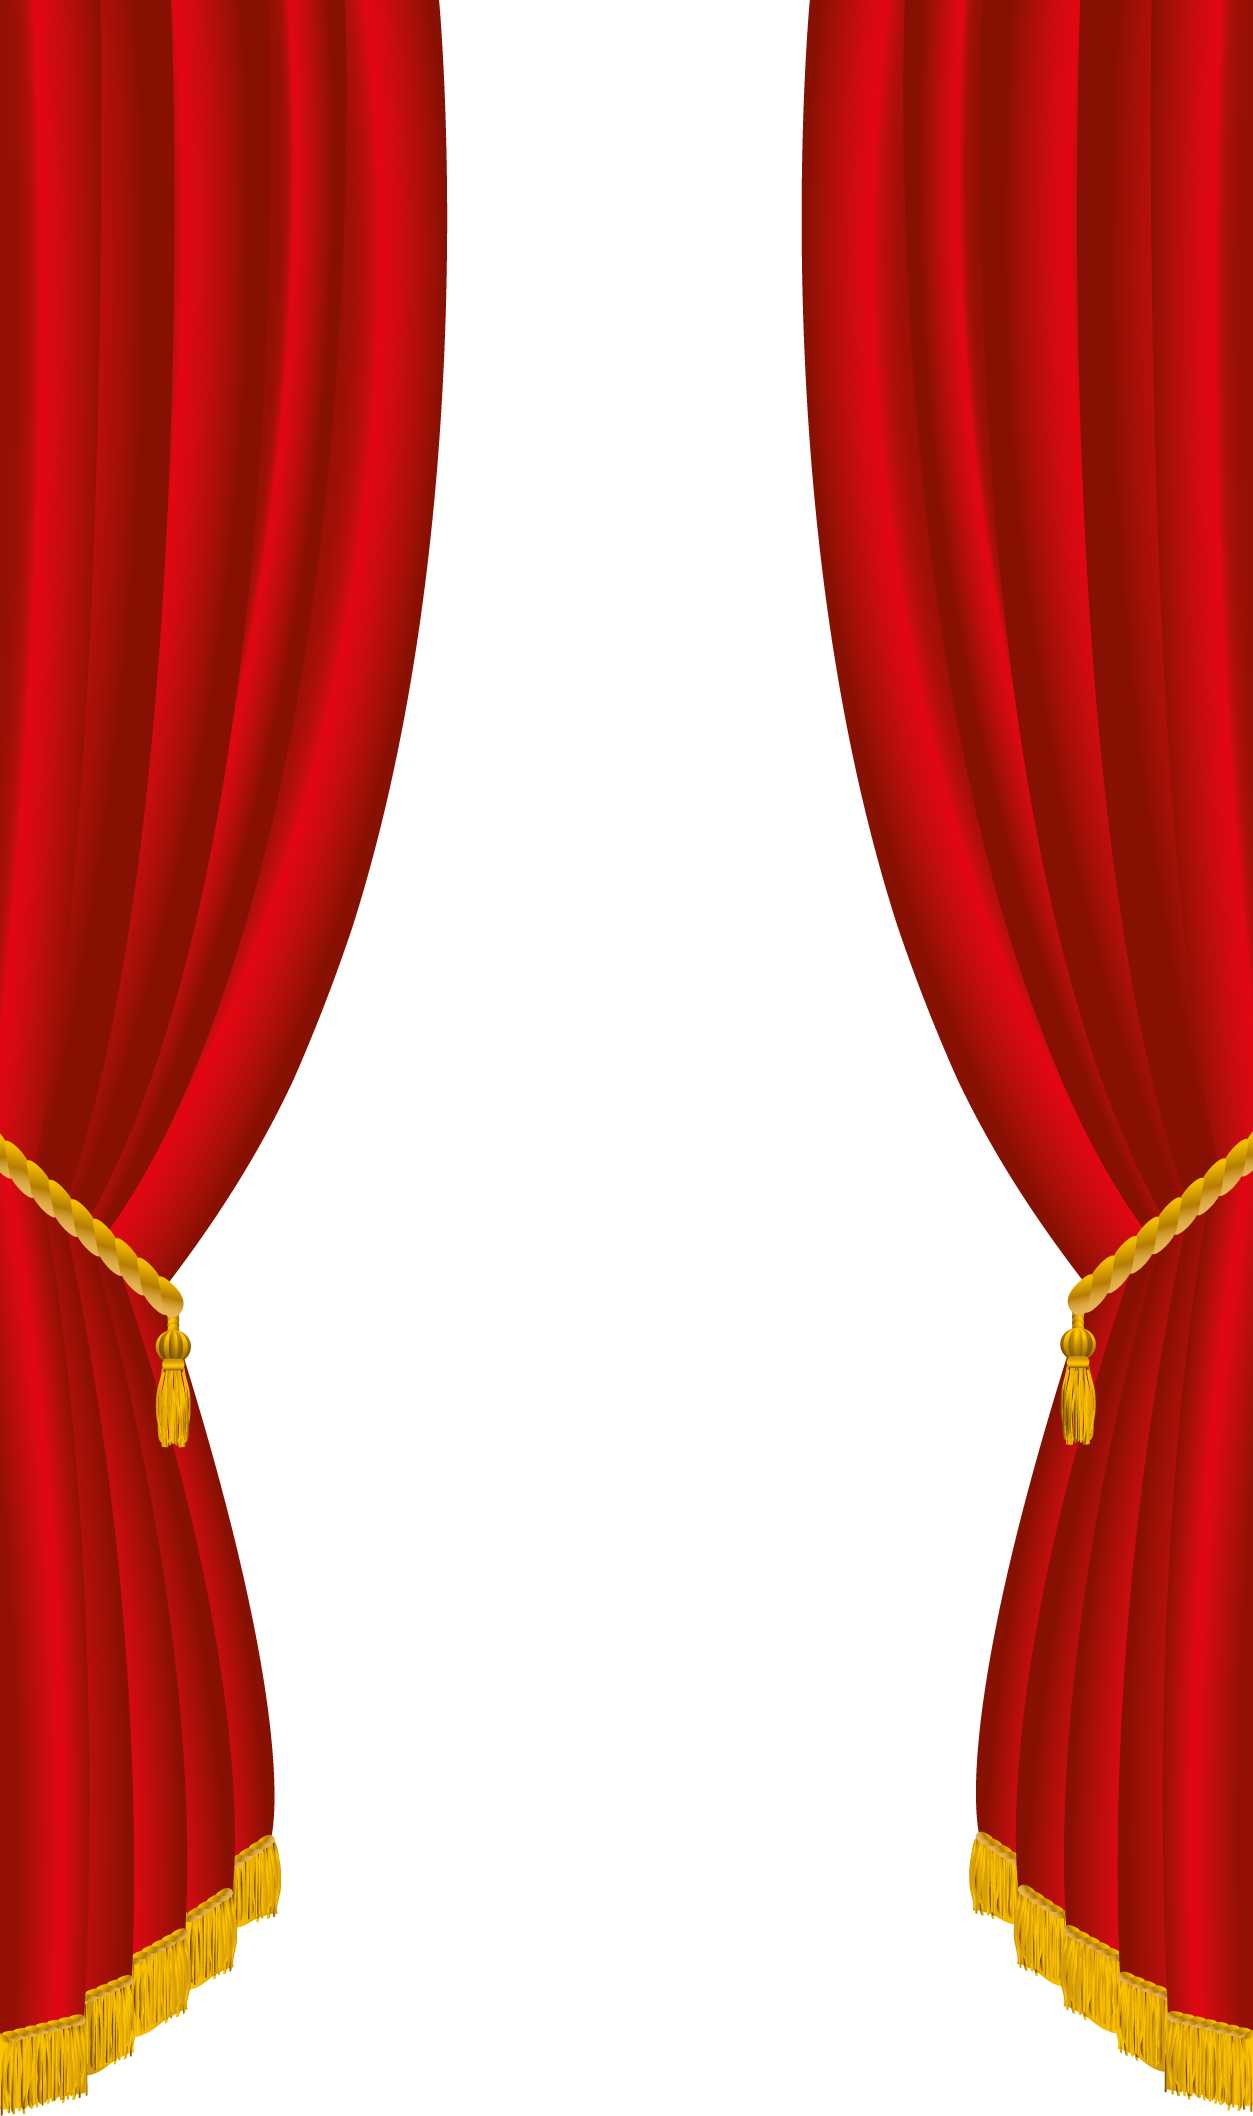 Natural Curtains Png Images 358